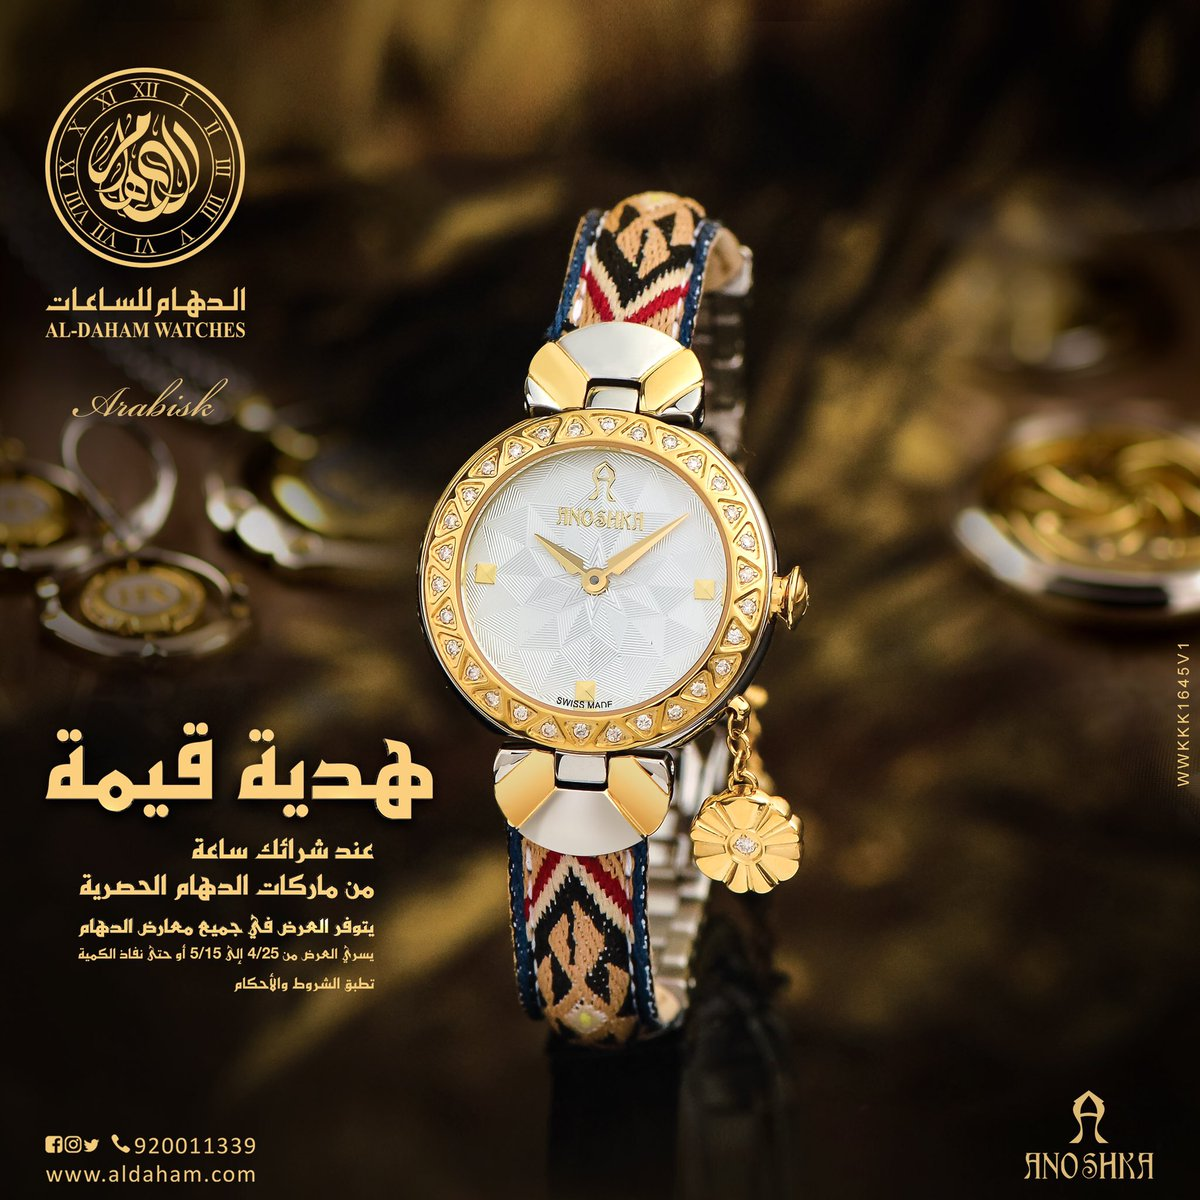 9d6cf408ee331 الدهام للساعات ( ALDAHAM WATCHES)